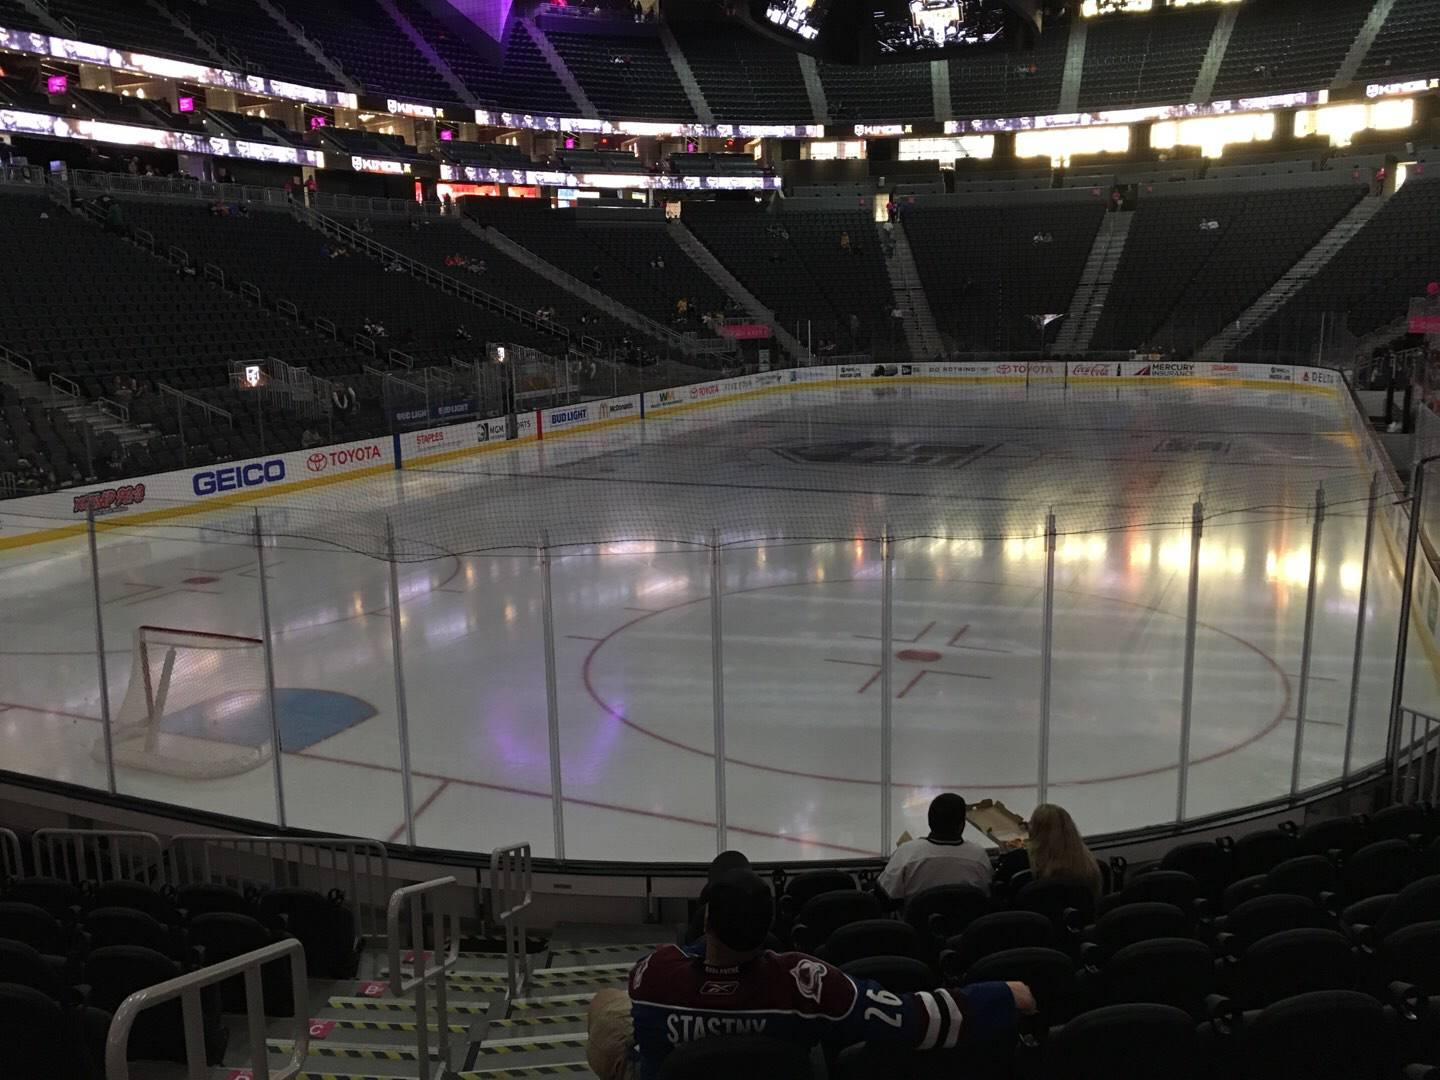 T-Mobile Arena Section 2 Row J Seat 1